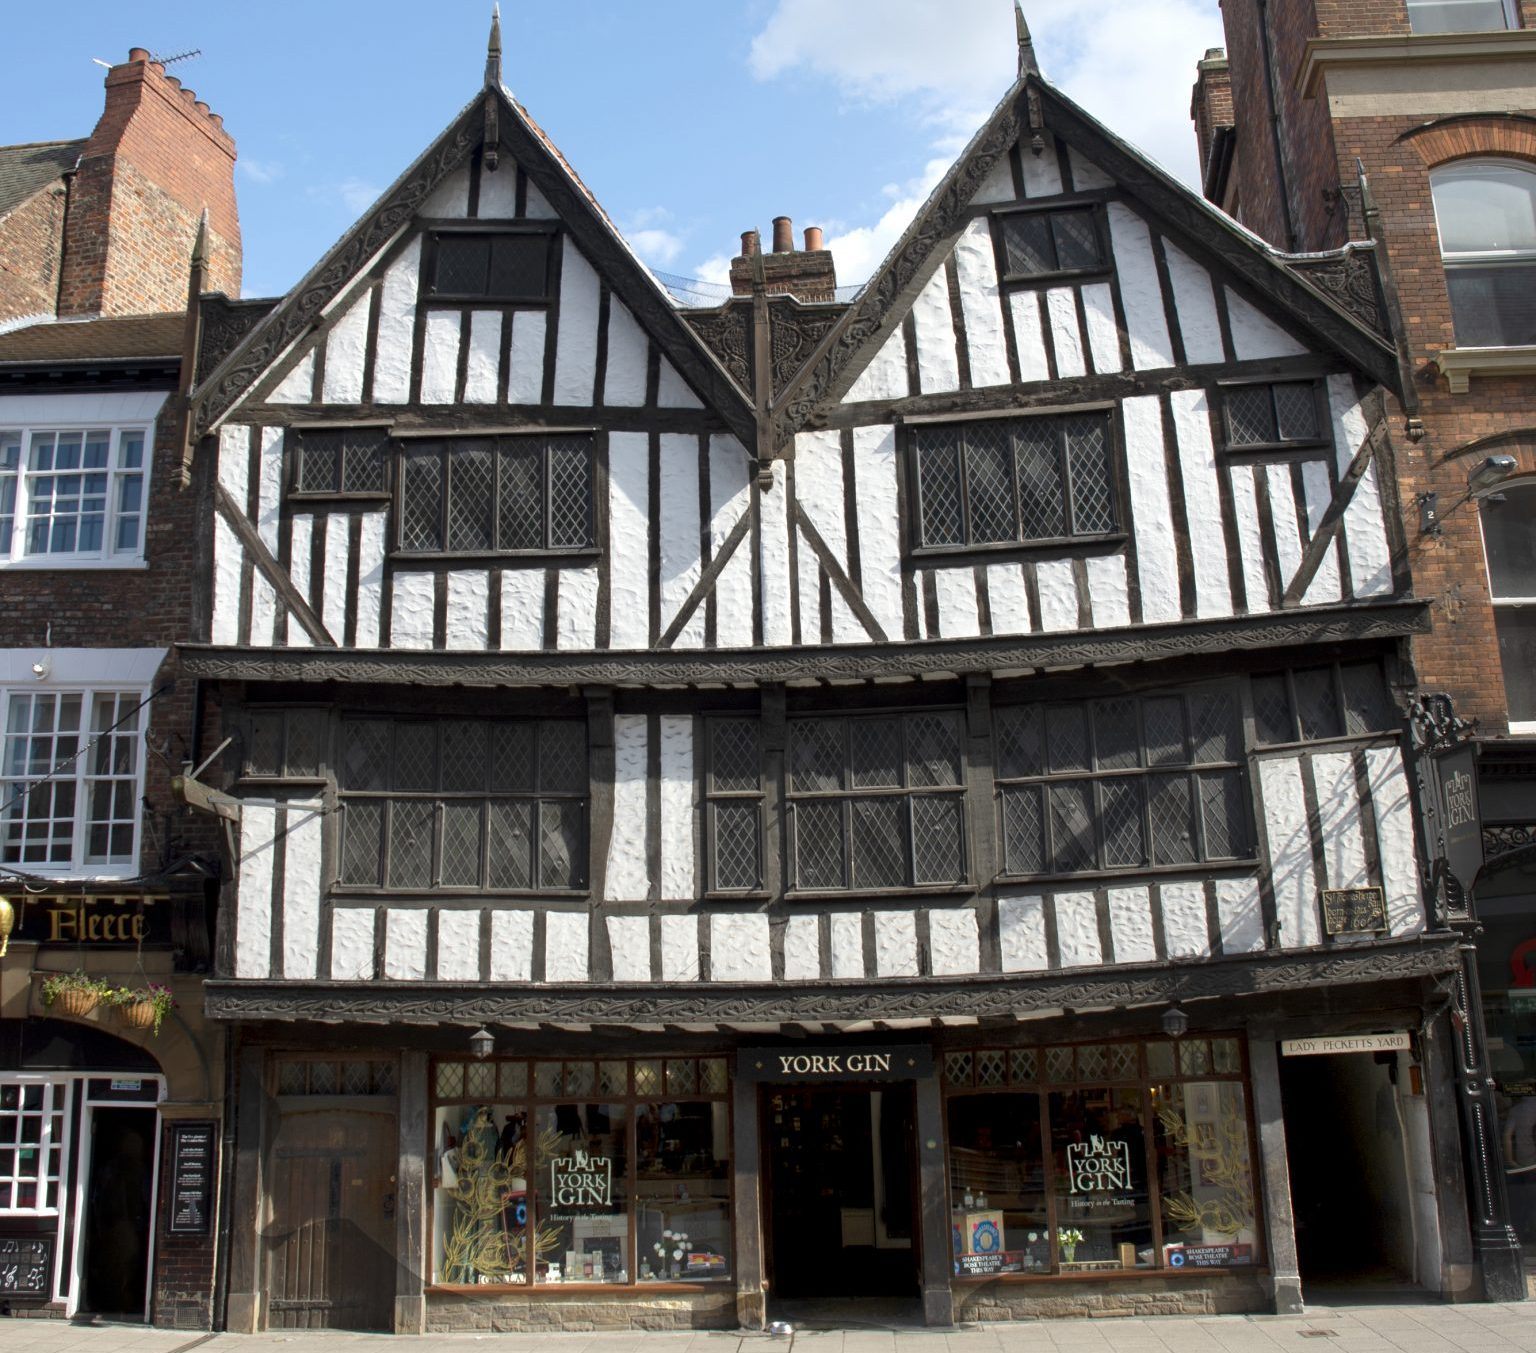 Thomas Herbert House home of York Gin 16th century building